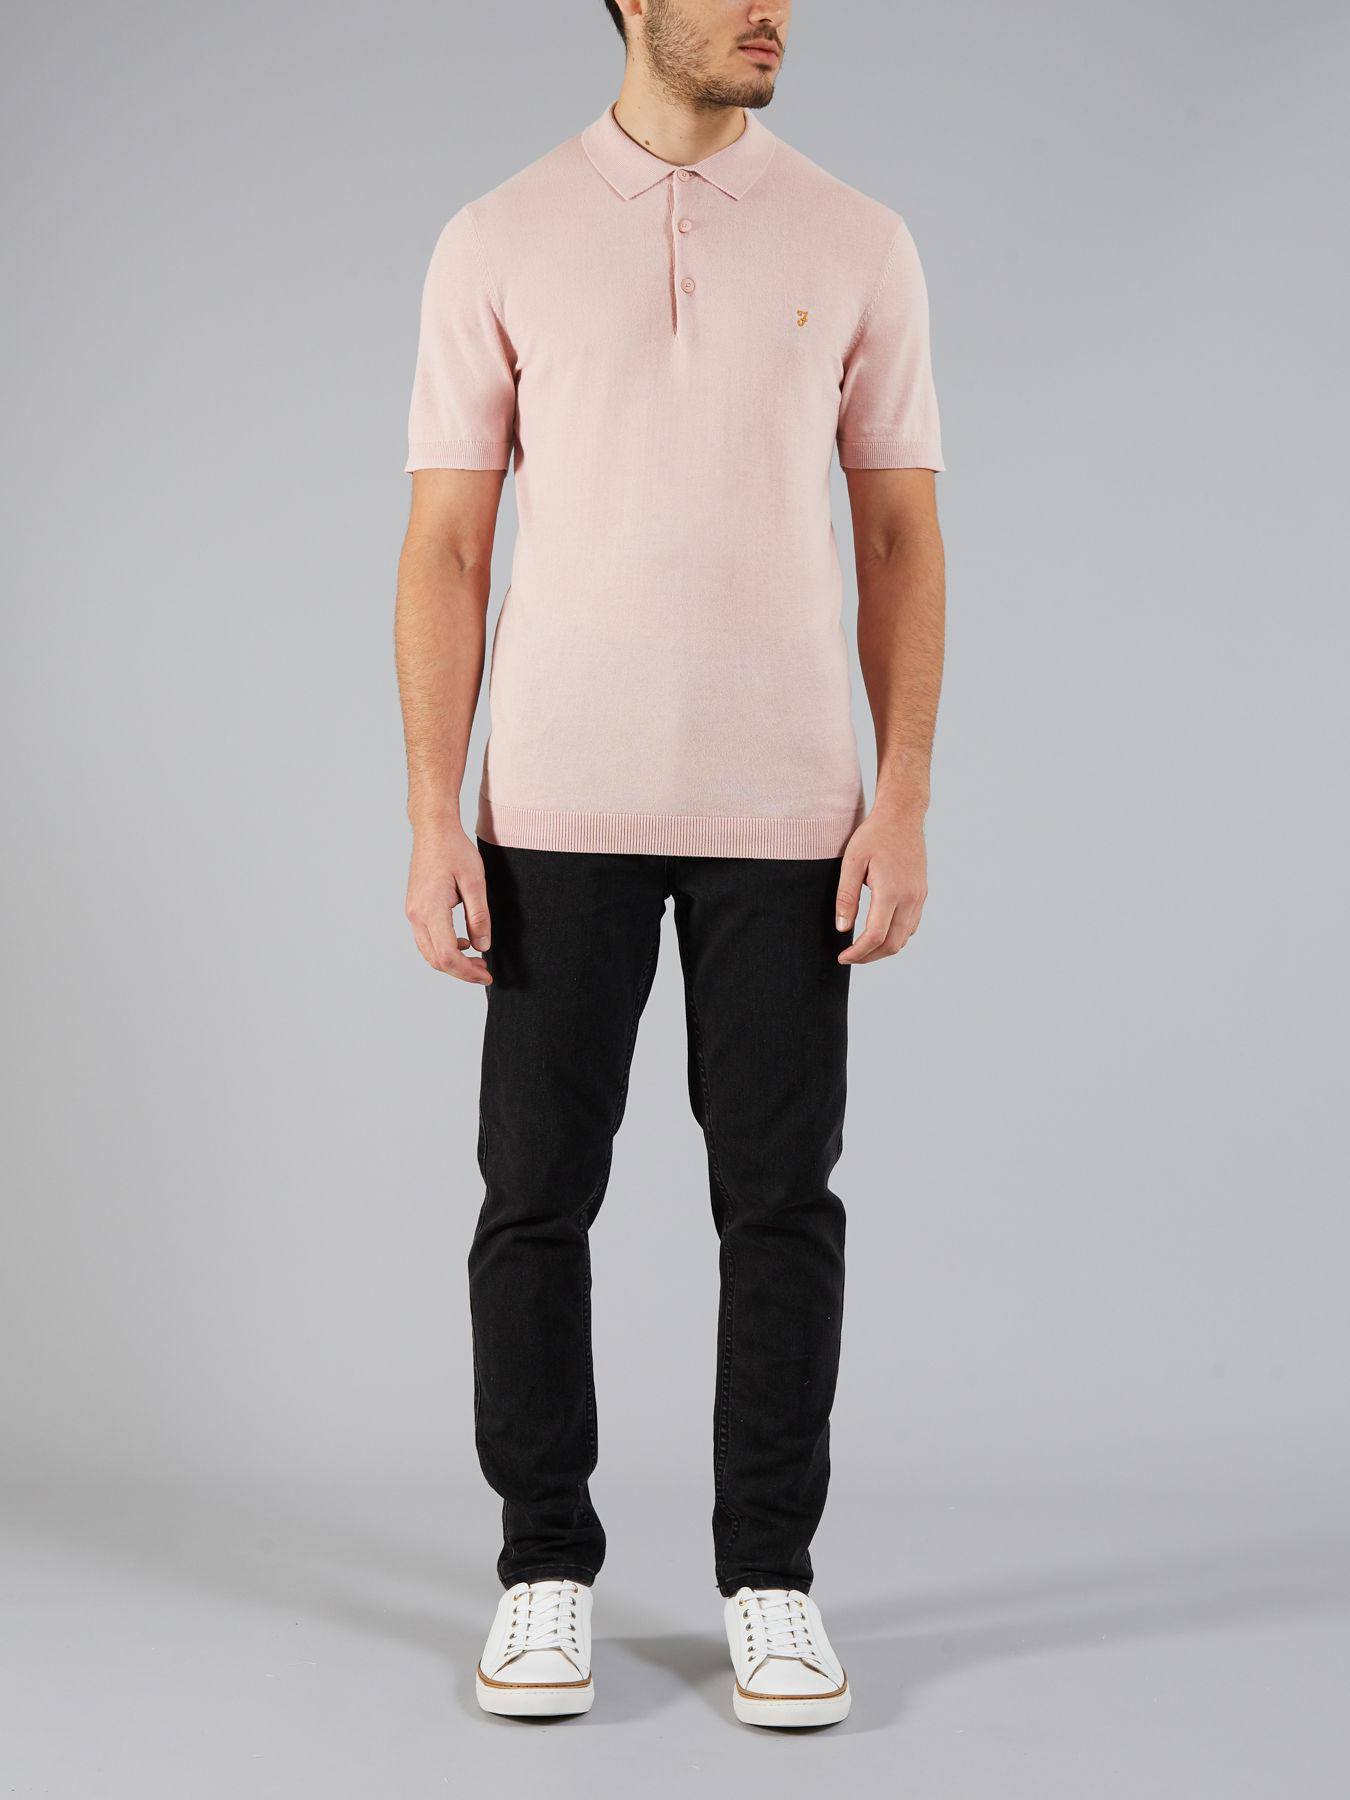 69682733 Farah The Ben Knitted Polo in Pink for Men - Lyst